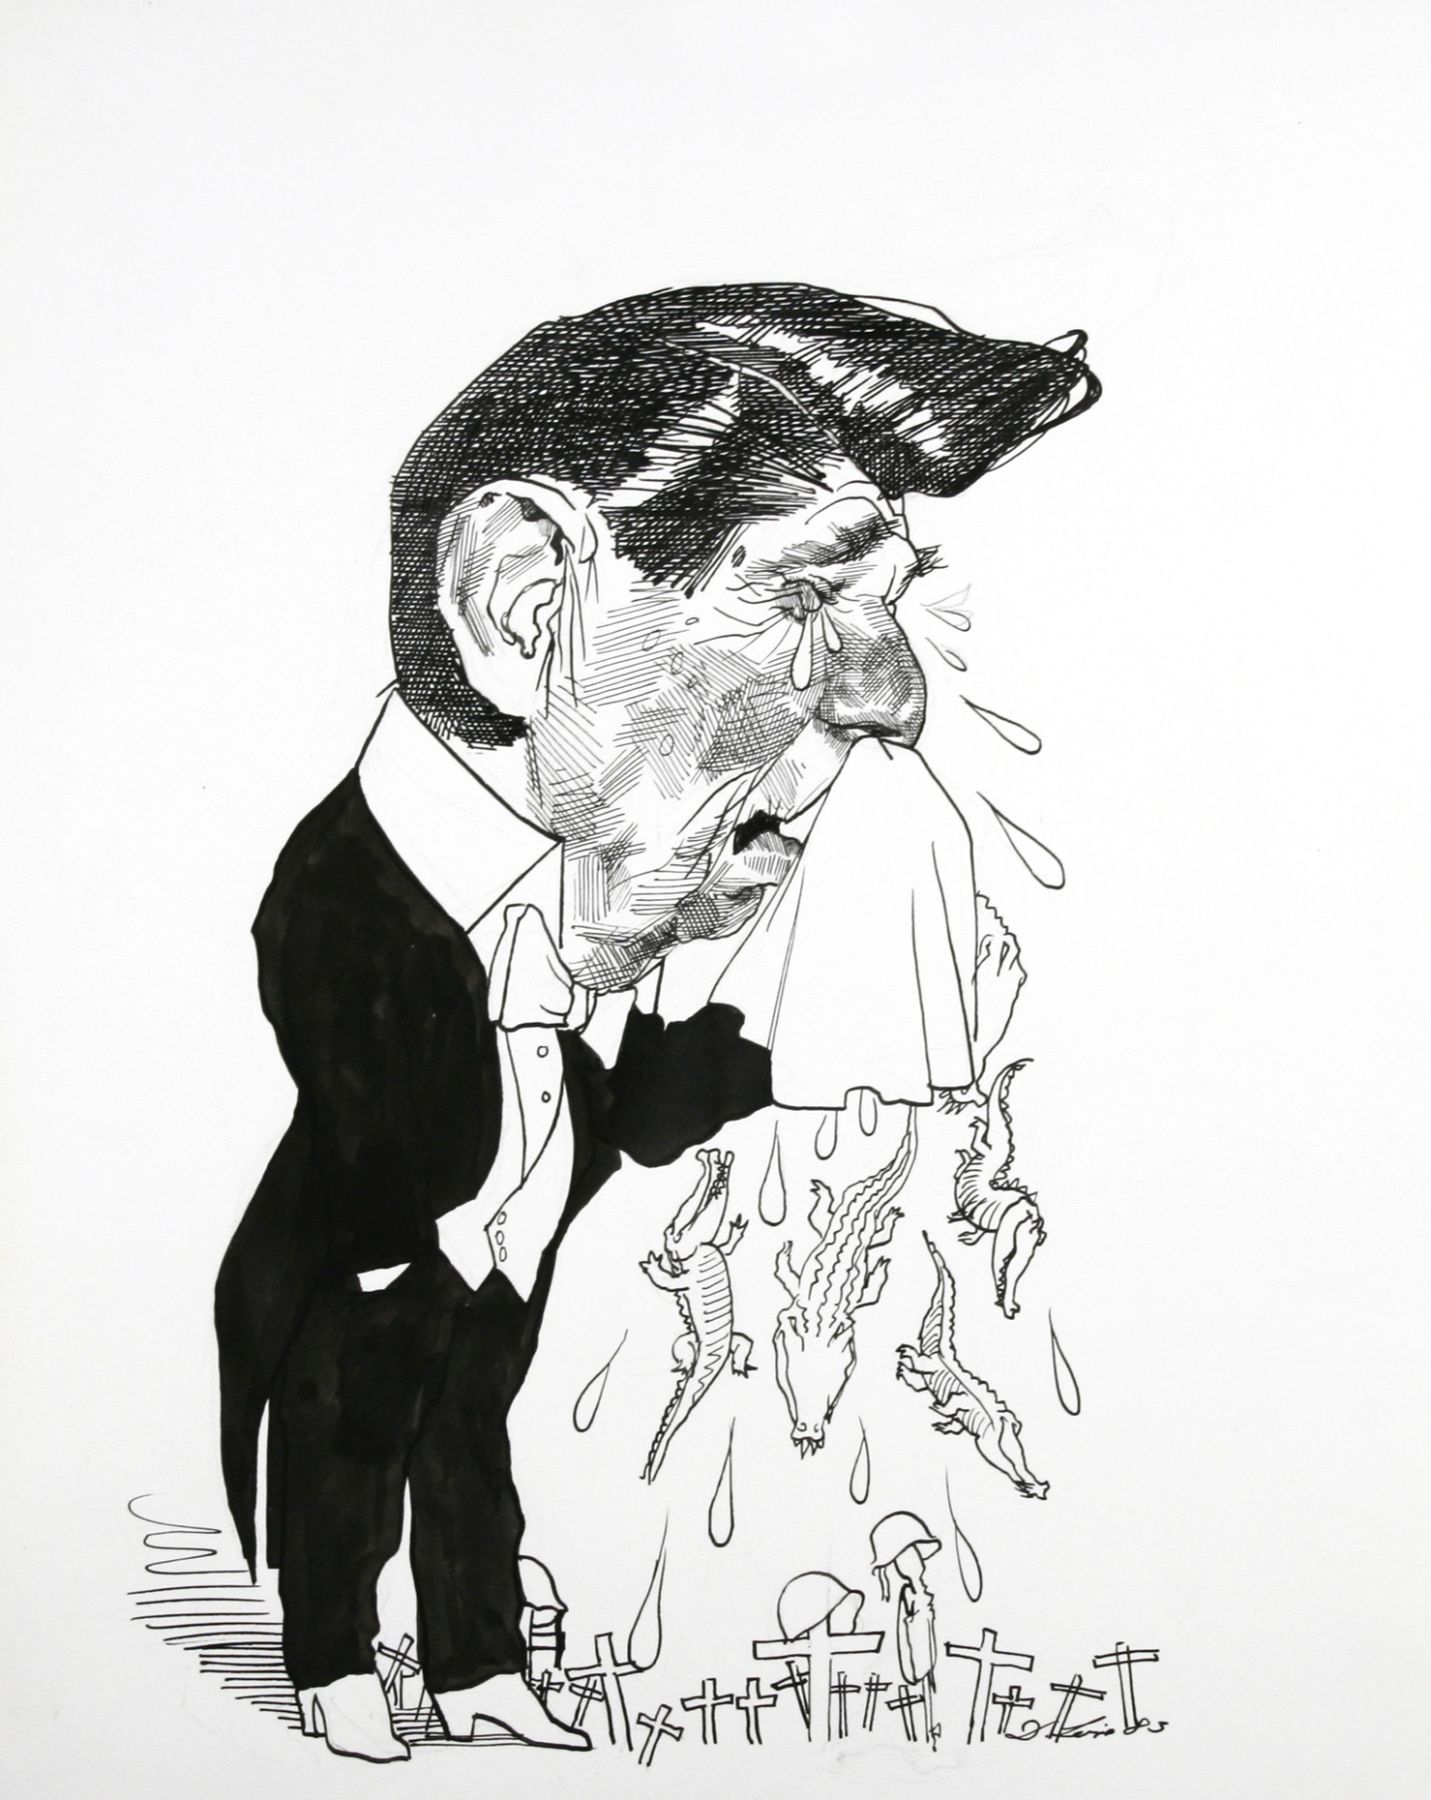 David Levine, Reagan -Alligator Tears, 1983, ink & pencil on paper, 13 1/2 x 11 inches